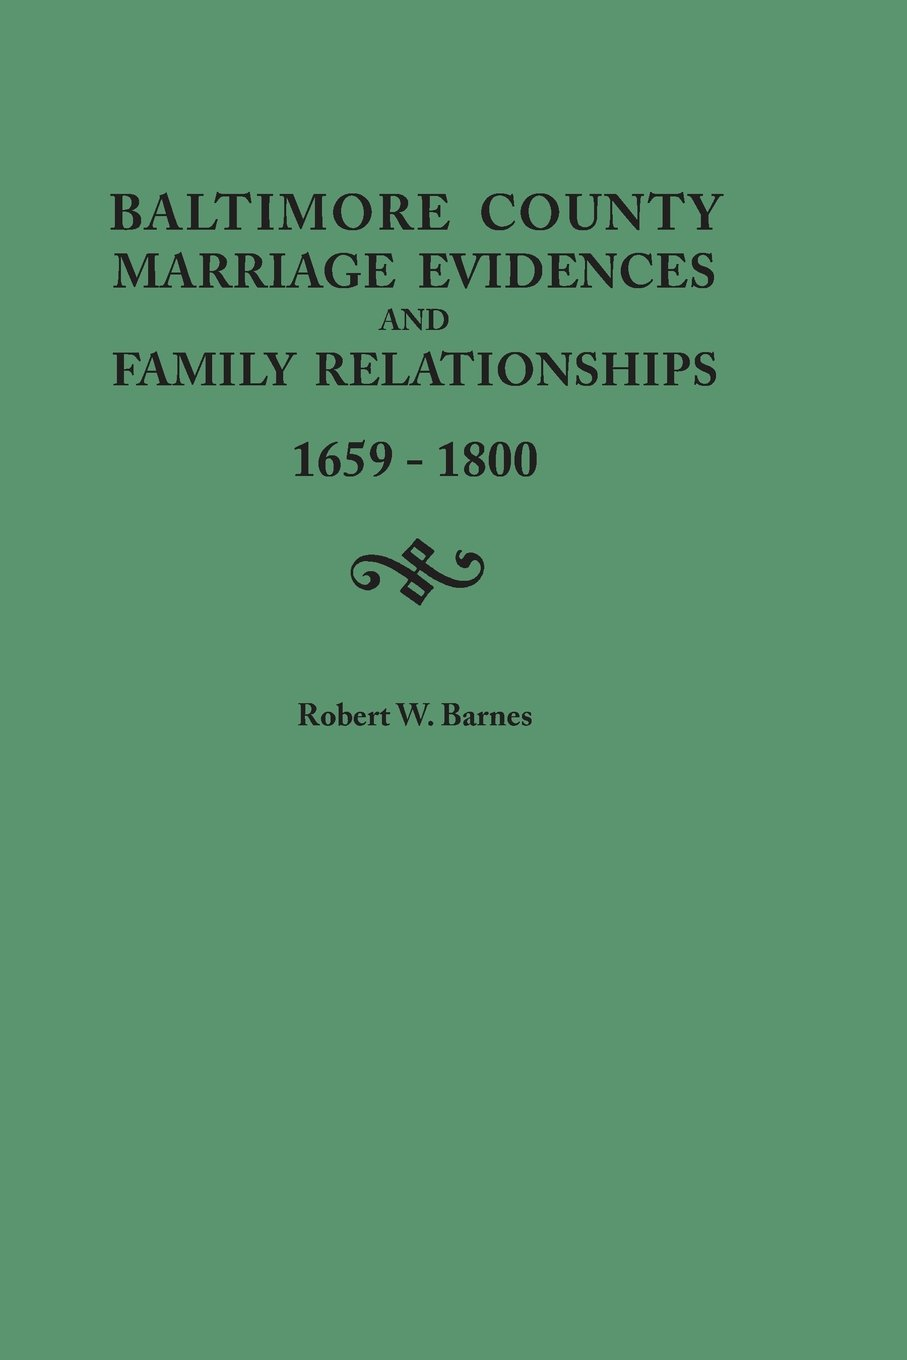 Read Online Baltimore County Marriage Evidences and Family Relationships, 1659-1800 pdf